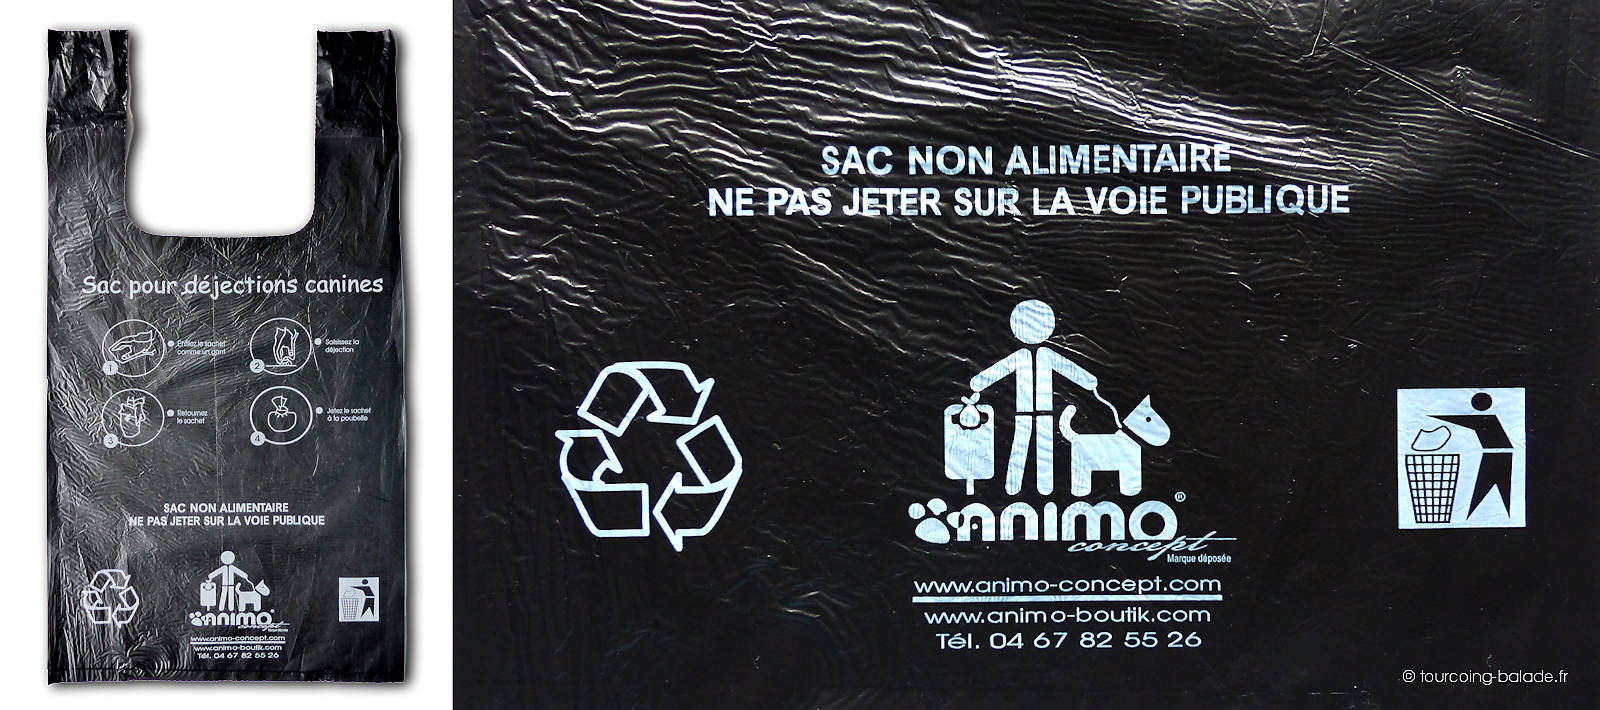 Sac pour déjections canines animo concept